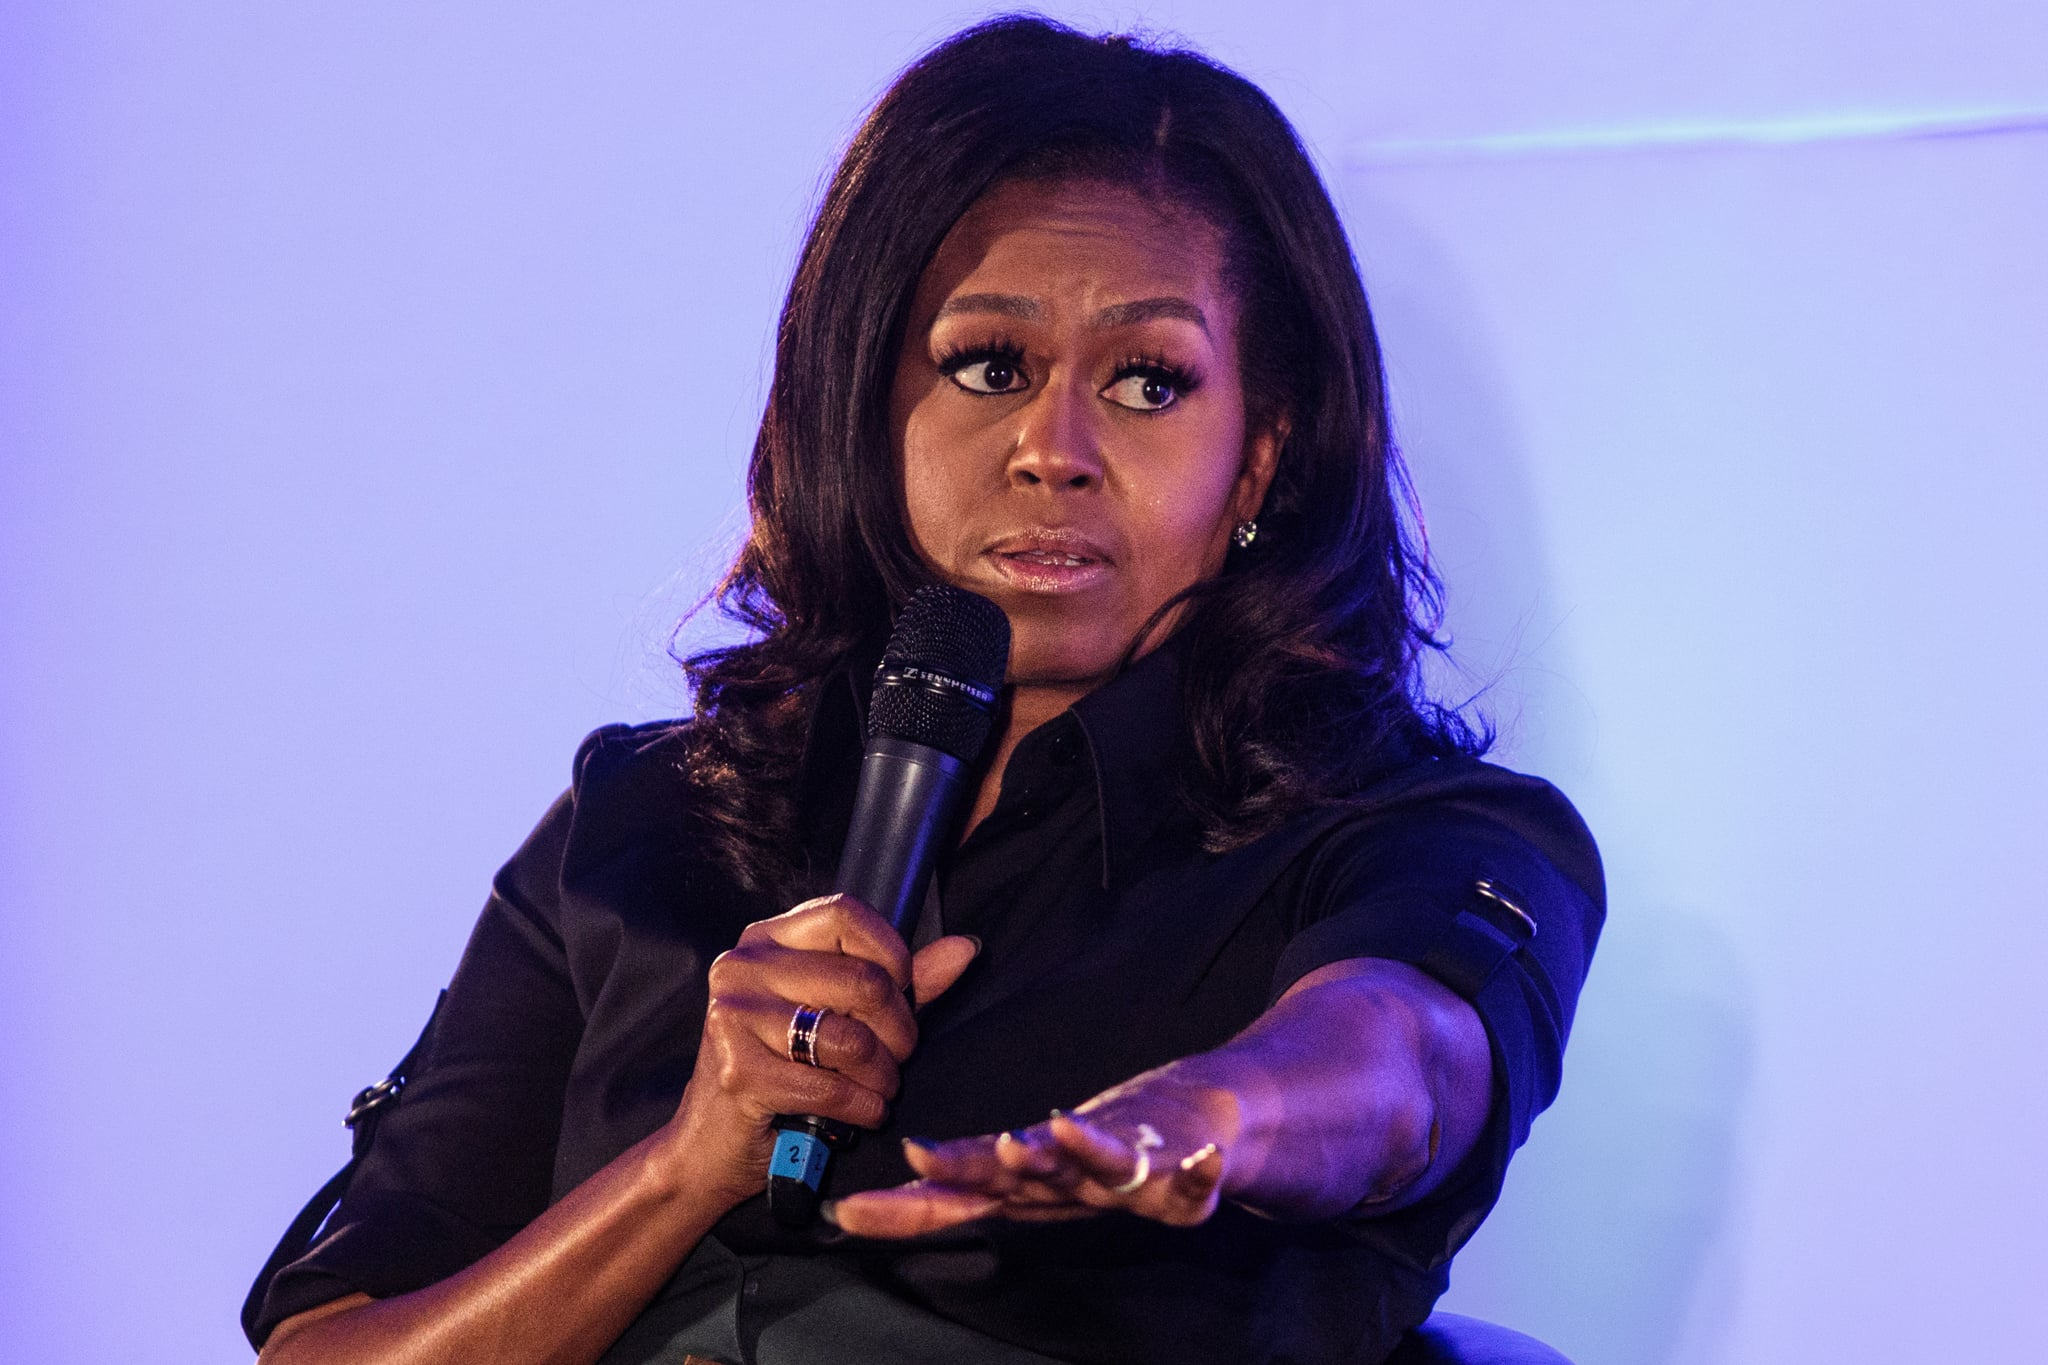 LONDON, ENGLAND - DECEMBER 03: Former U.S. First Lady Michelle Obama speaks at an event at the Elizabeth Garrett Anderson School on December 03, 2018 in London, England. The former First Lady's memoir titled 'Becoming' has become the best selling book in the US of 2018 according to figures released by her publisher Penguin Random House. (Photo by Jack Taylor/Getty Images)